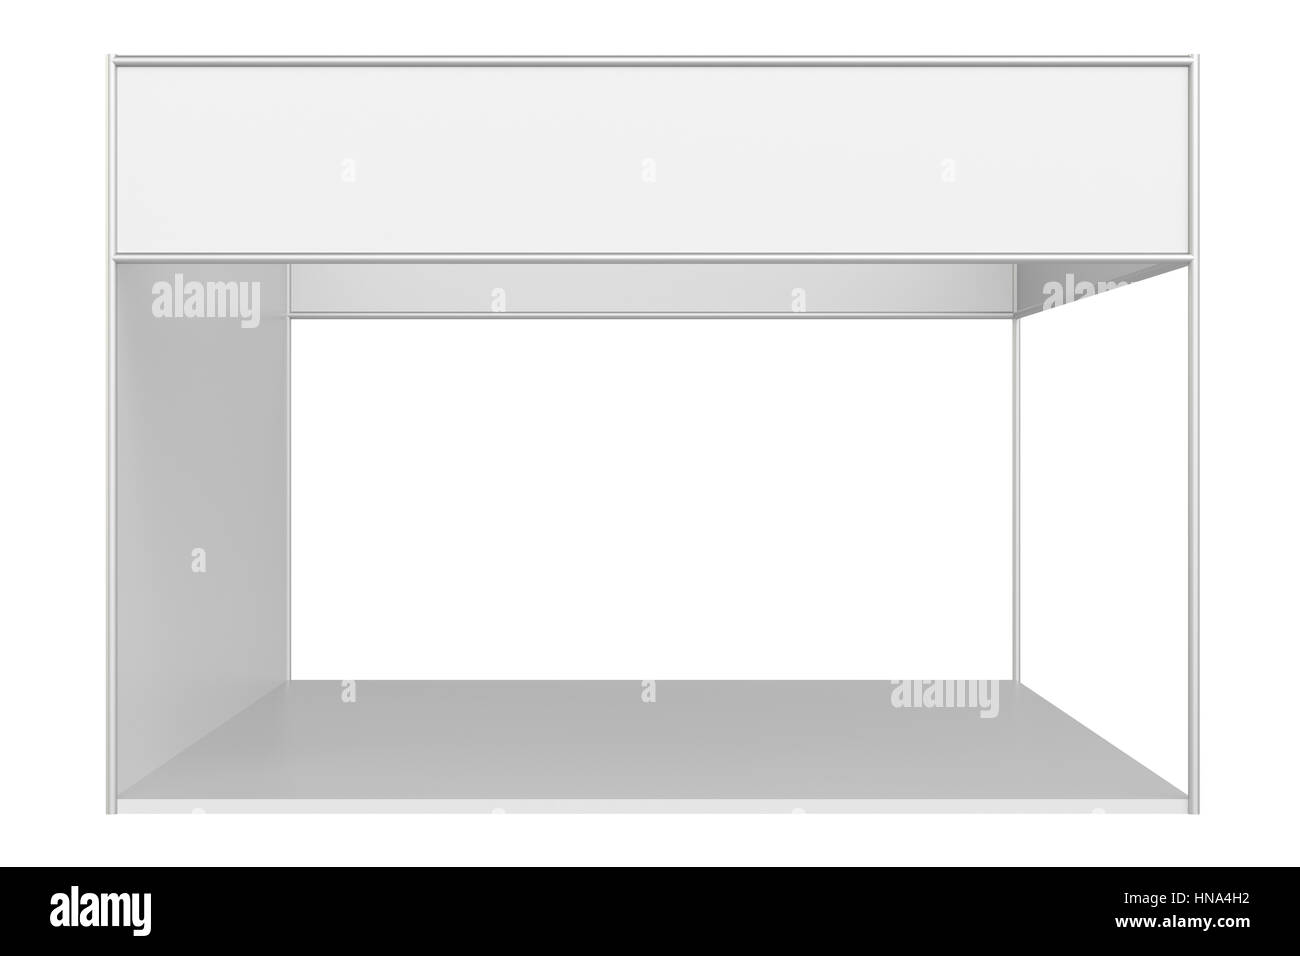 Exhibition Stand Drawing : Blank exhibition stand stock photo: 133603486 alamy